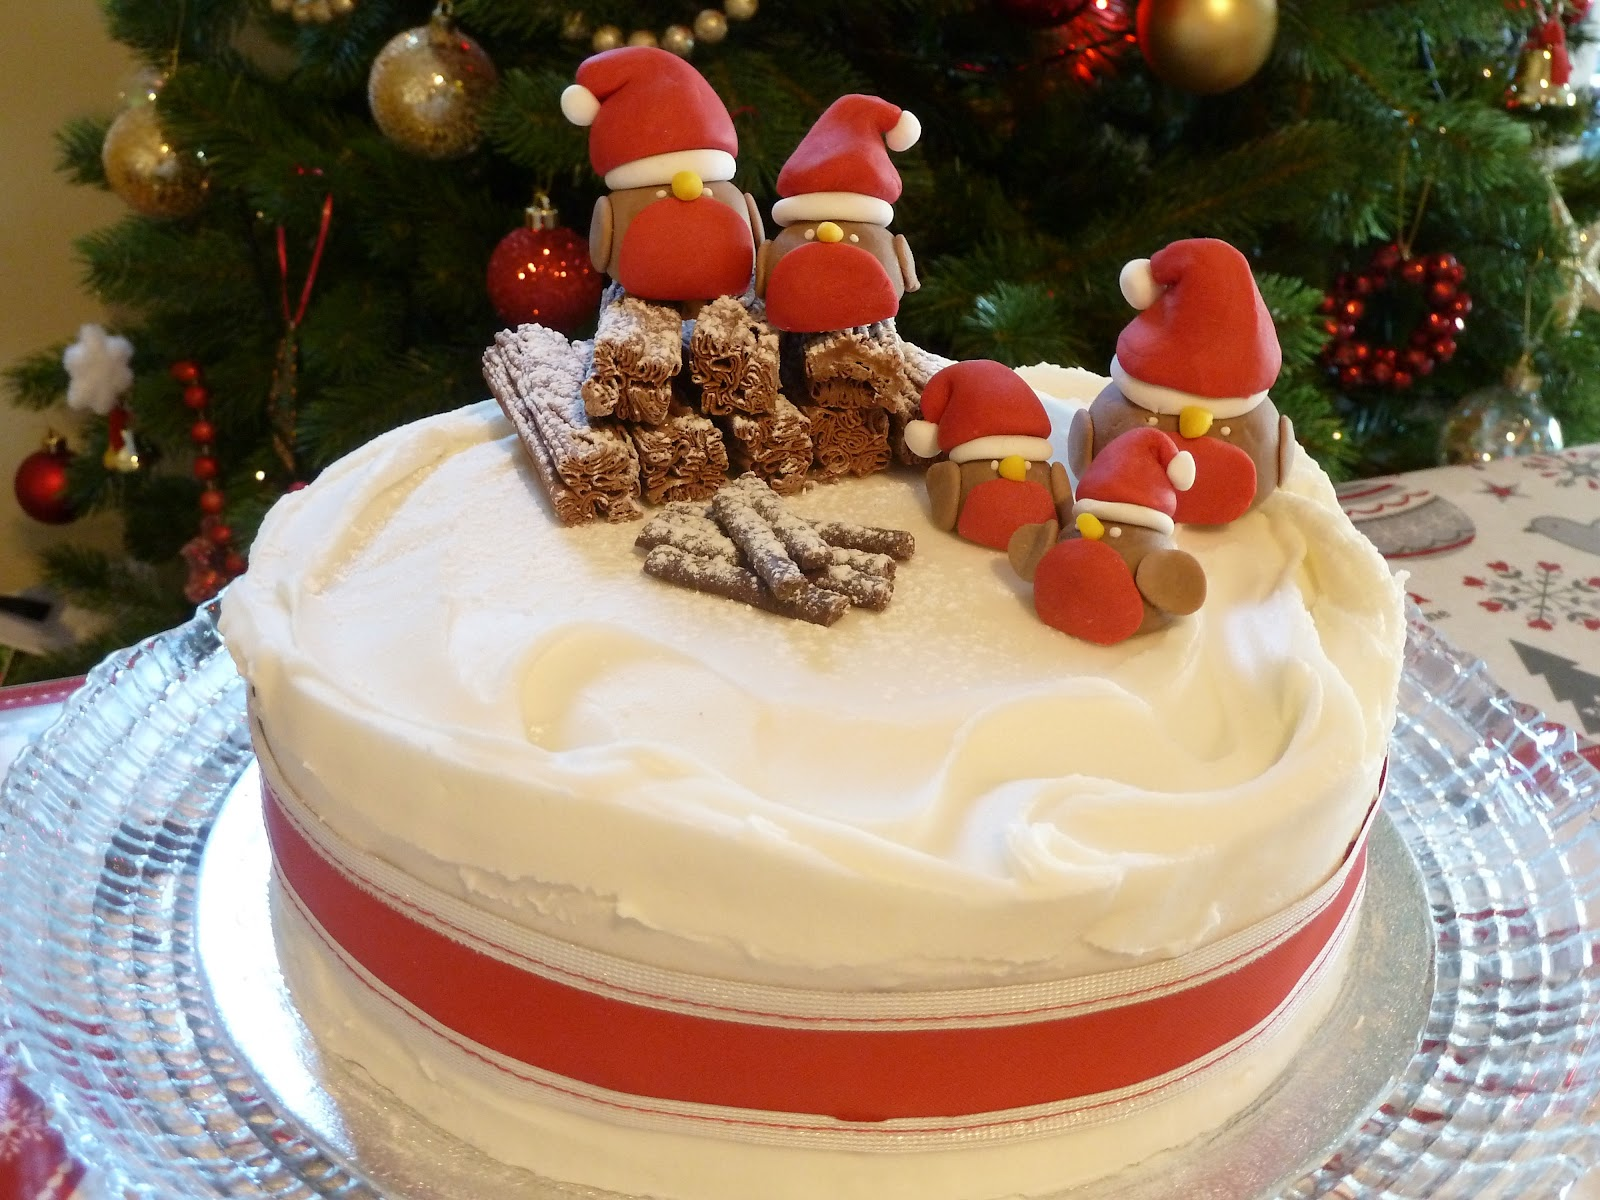 Christmas Cake Inspiration To Create Festive Robins Cake Garden Tea Cakes And Me